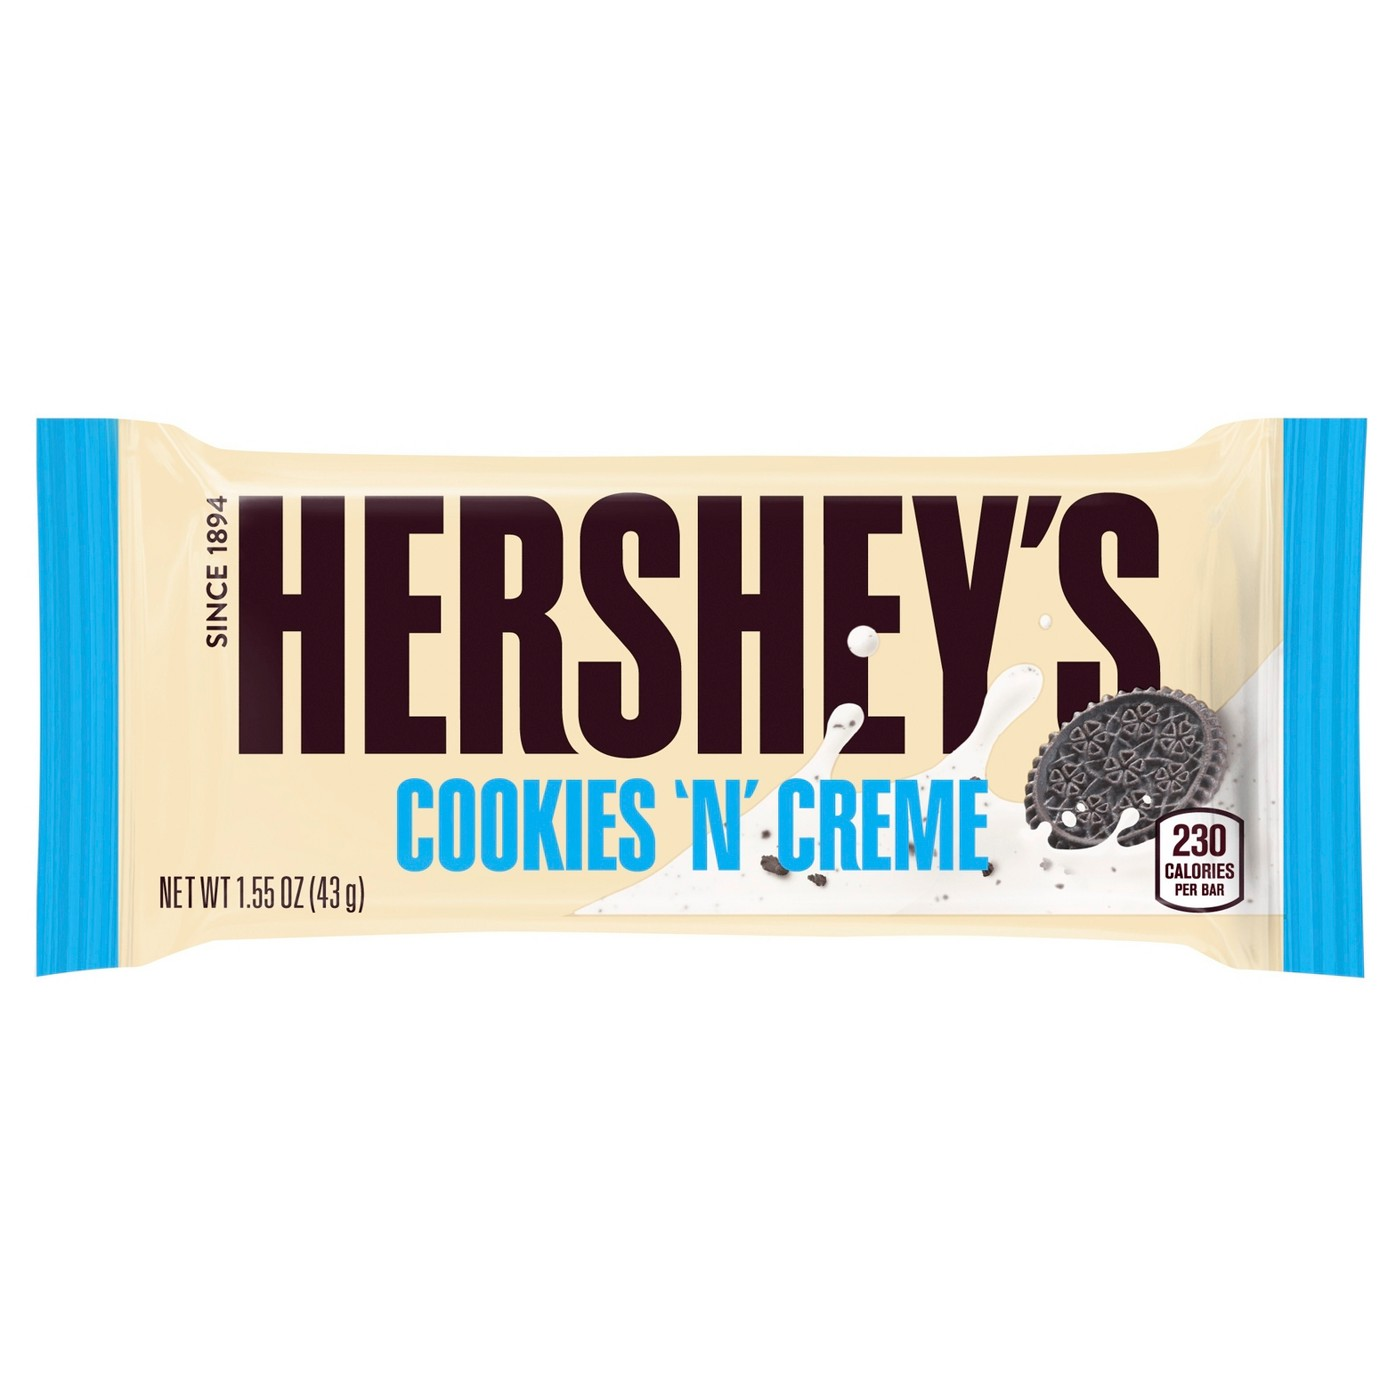 1994 hersheys cookies n cream.jpeg